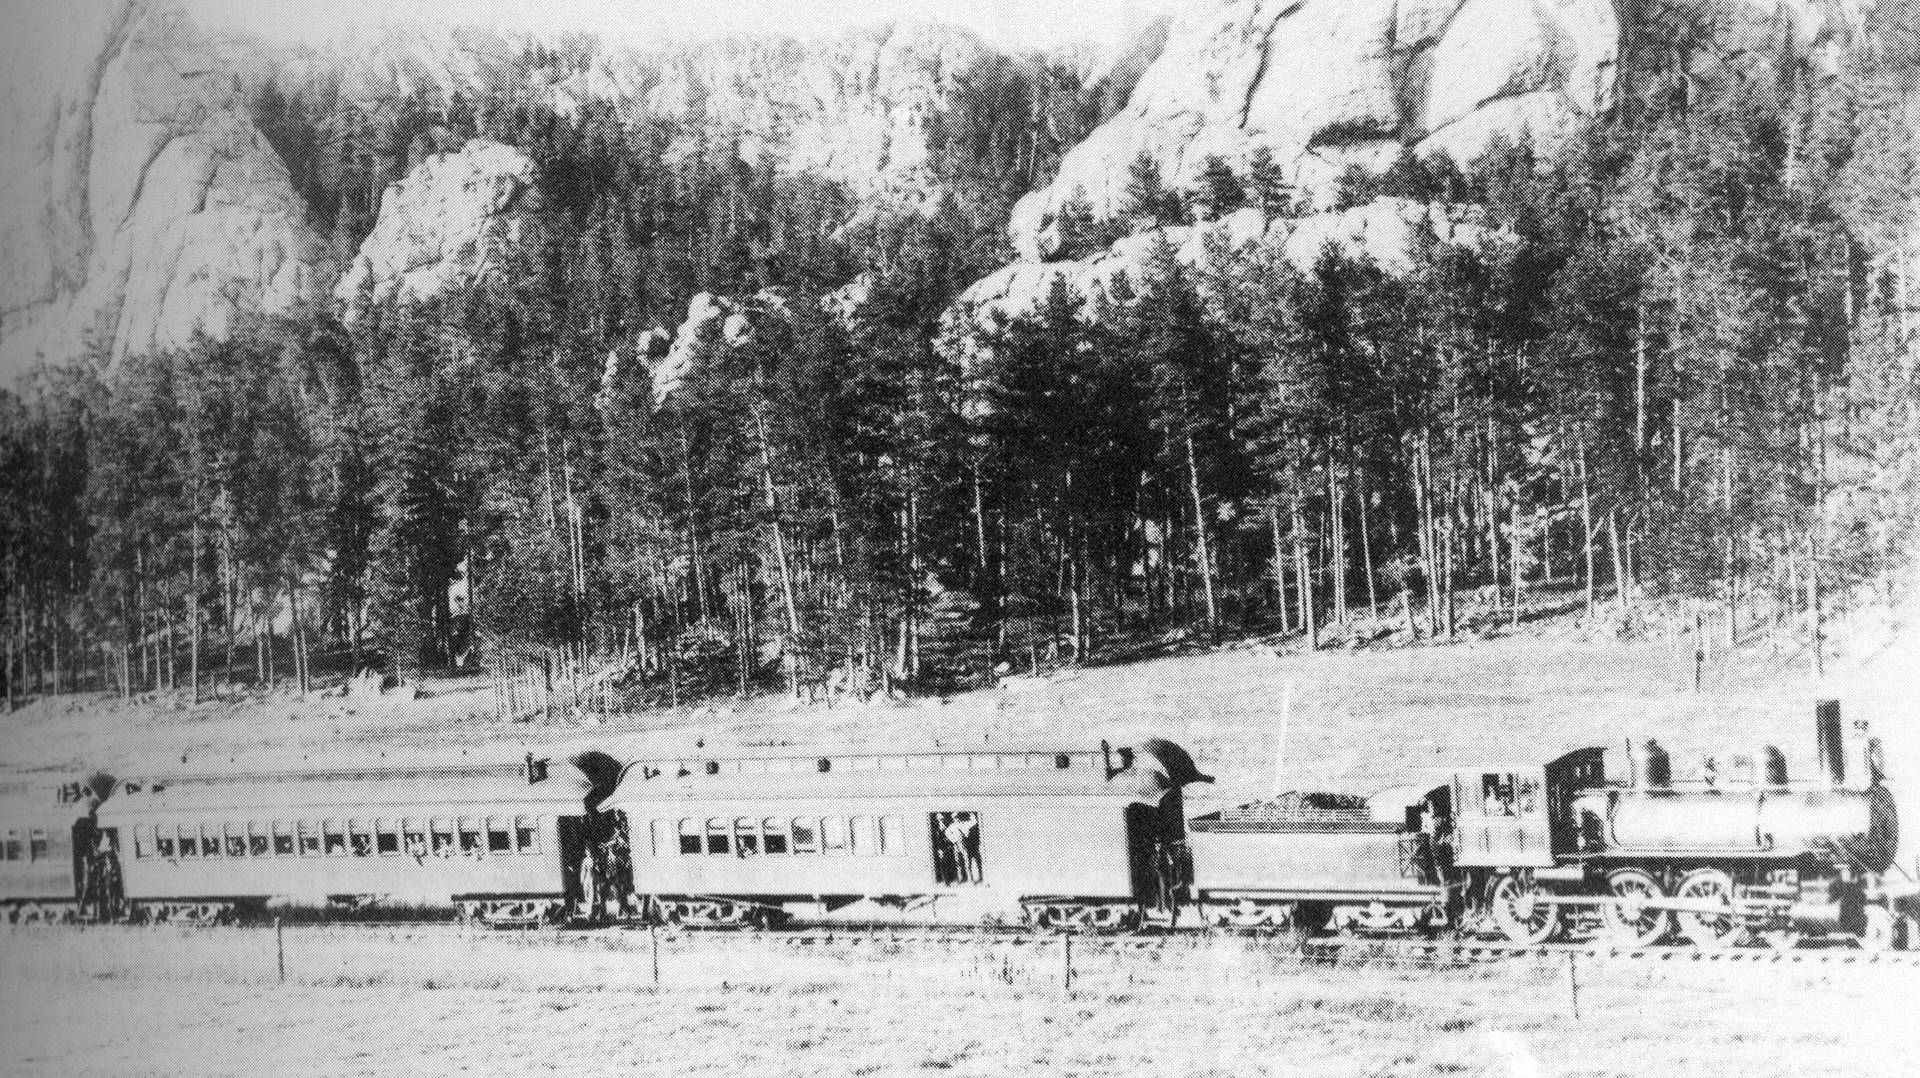 Train in the Black Hills